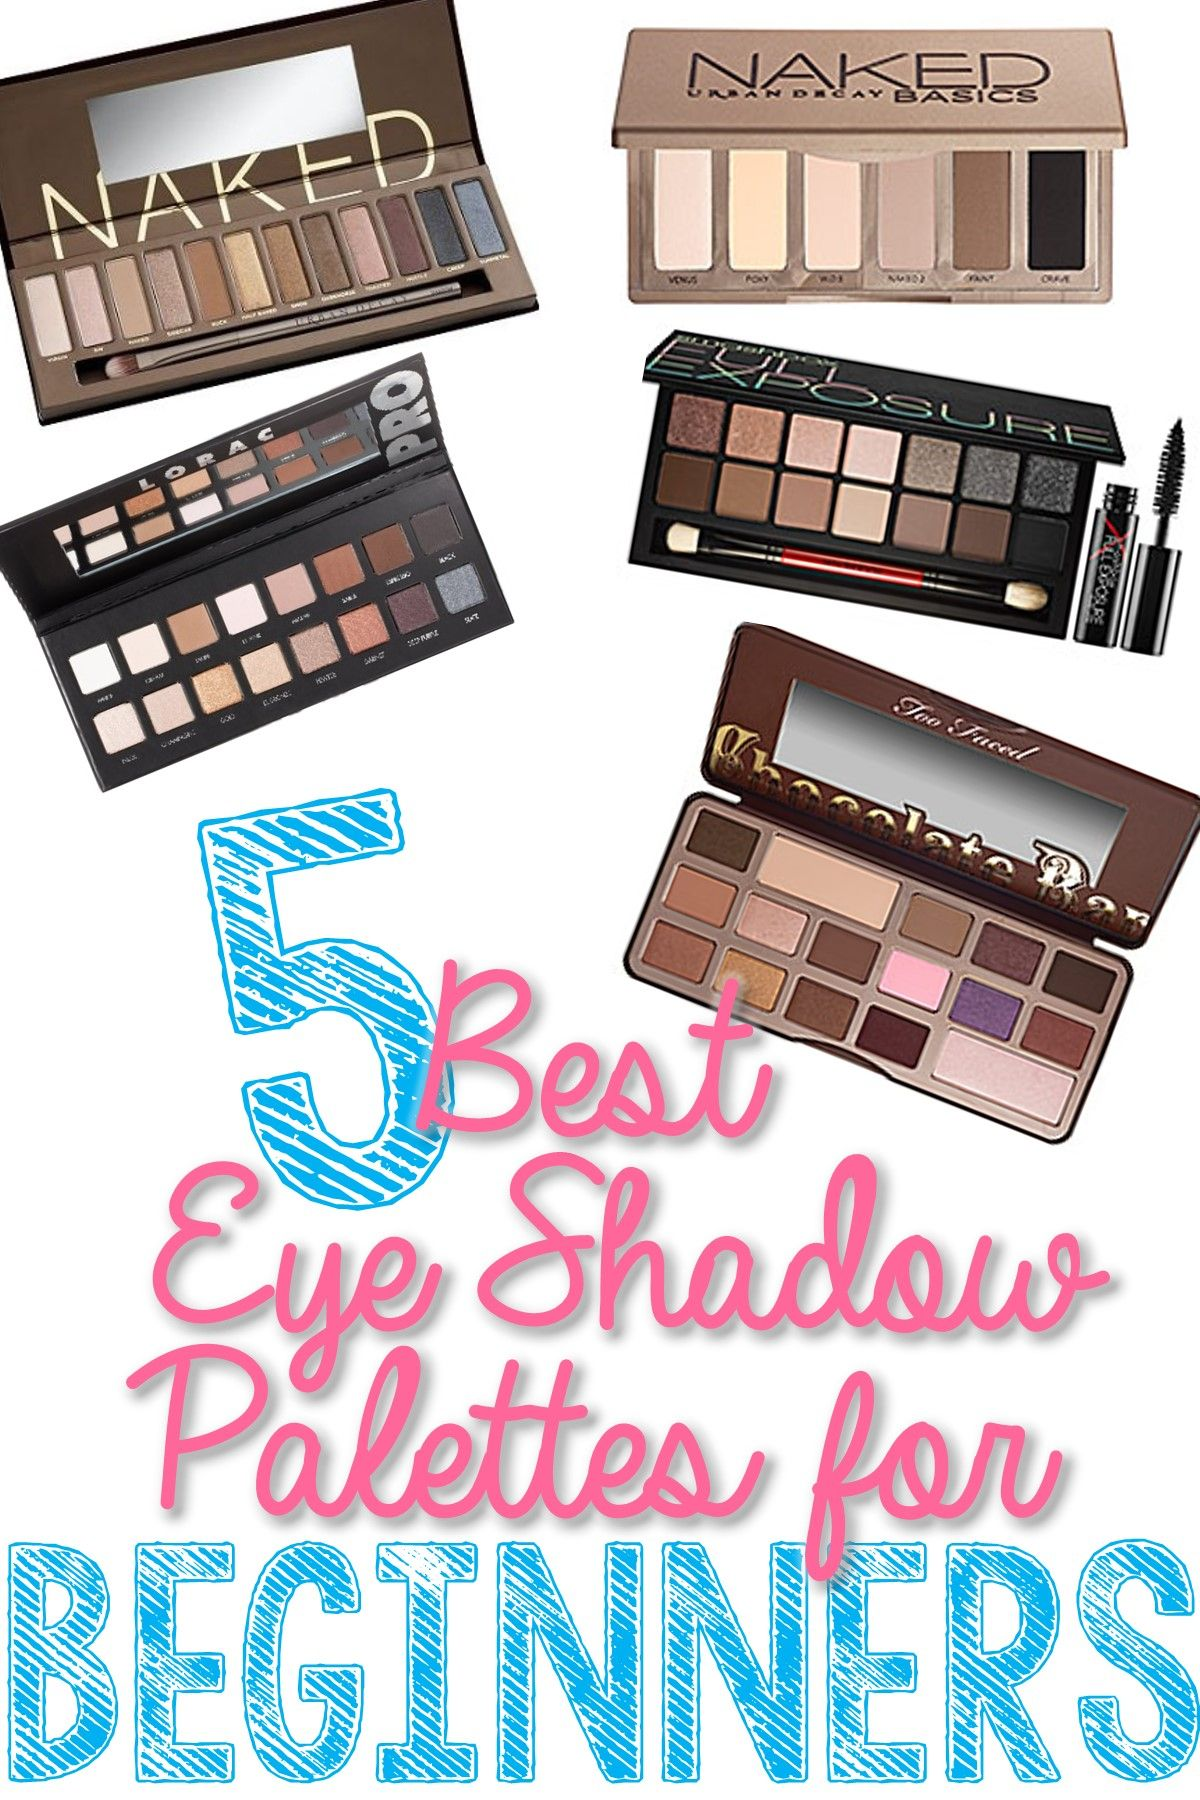 Best Eye Shadow Palettes for Beginners These are great